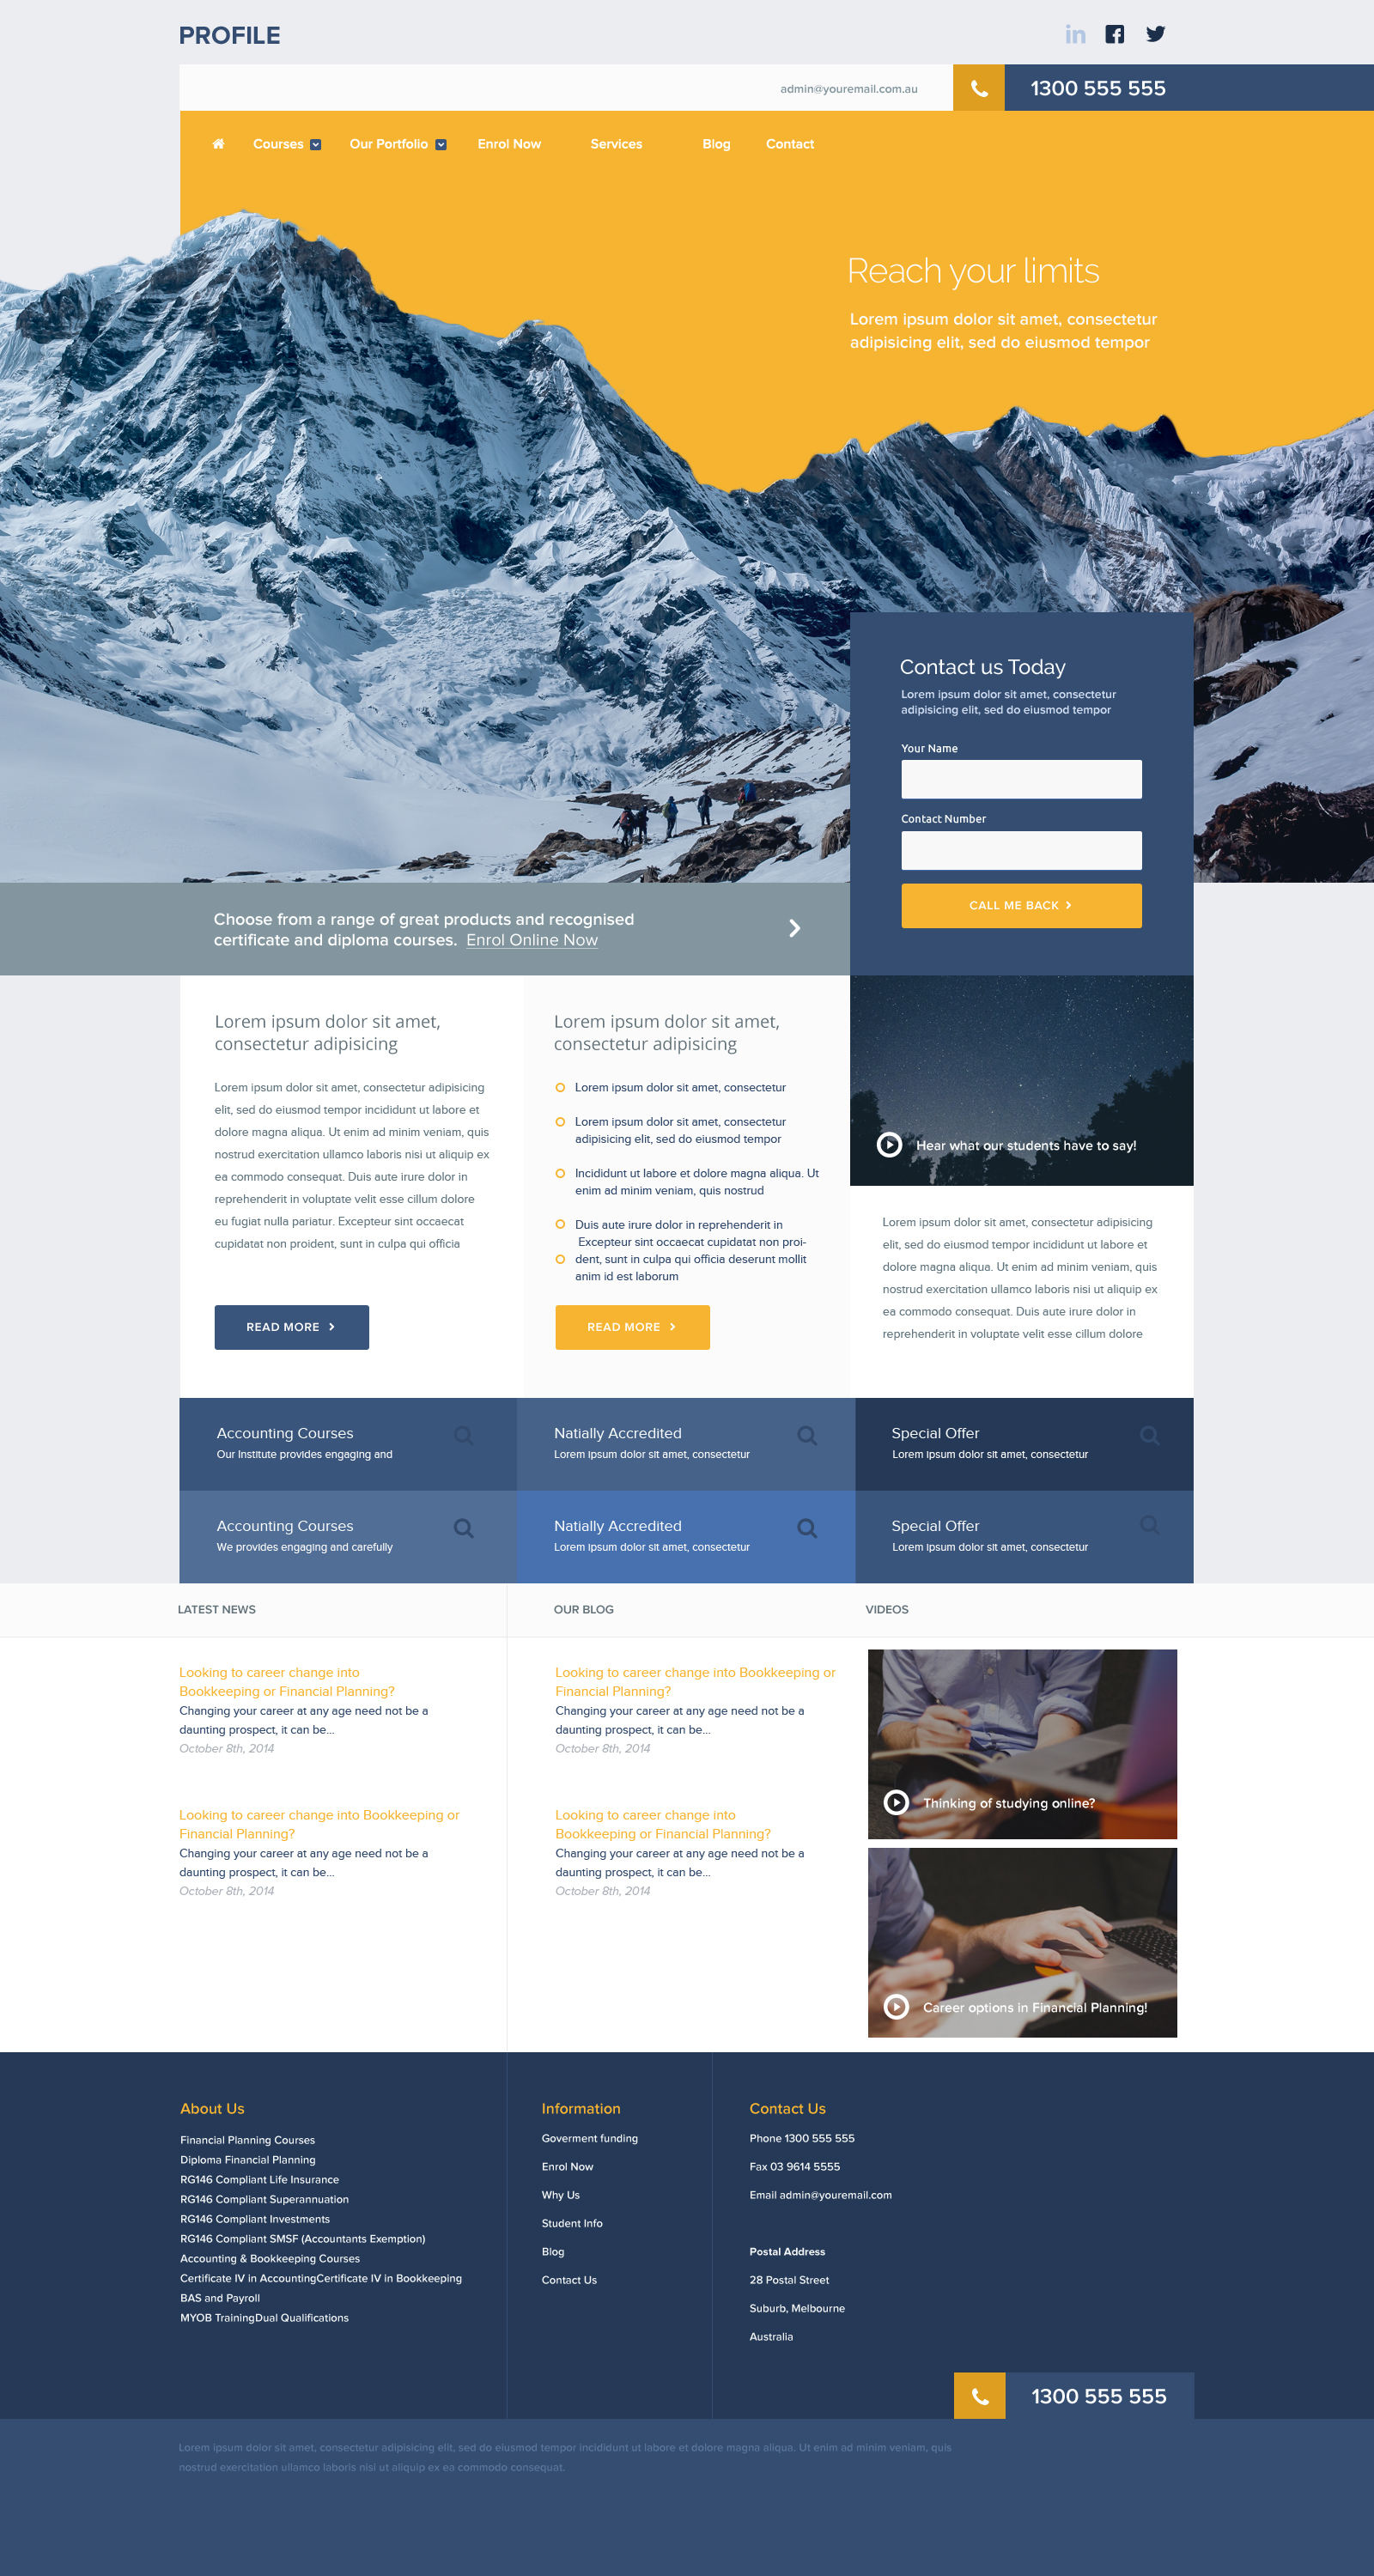 FREE Profile Portfolio Website Template Photoshop PSD